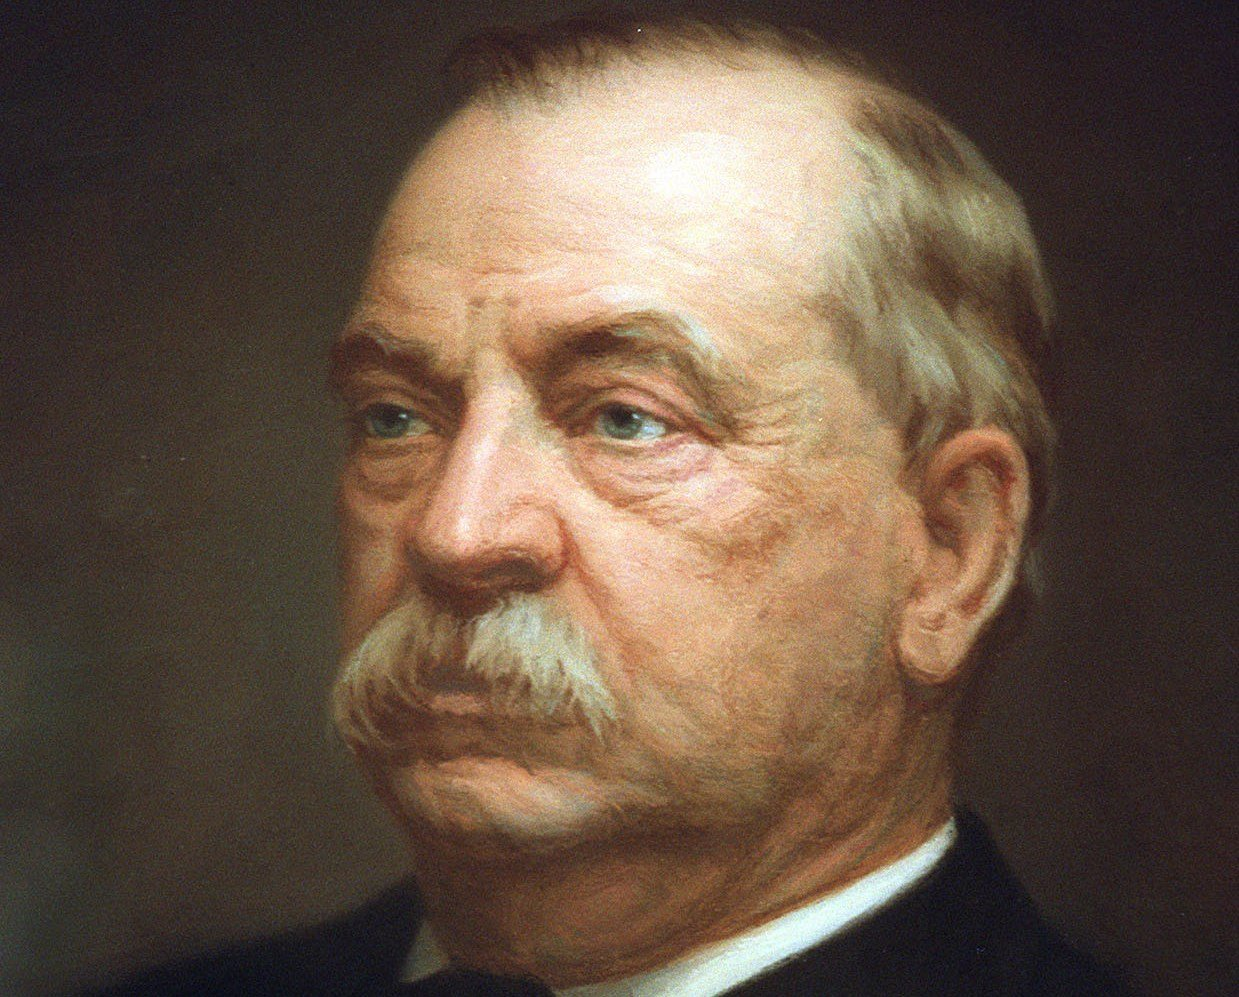 grover cleveland Grover cleveland served as the 22nd and 24th us president here are 10 facts about his family, life, education, career, sex scandal and death.